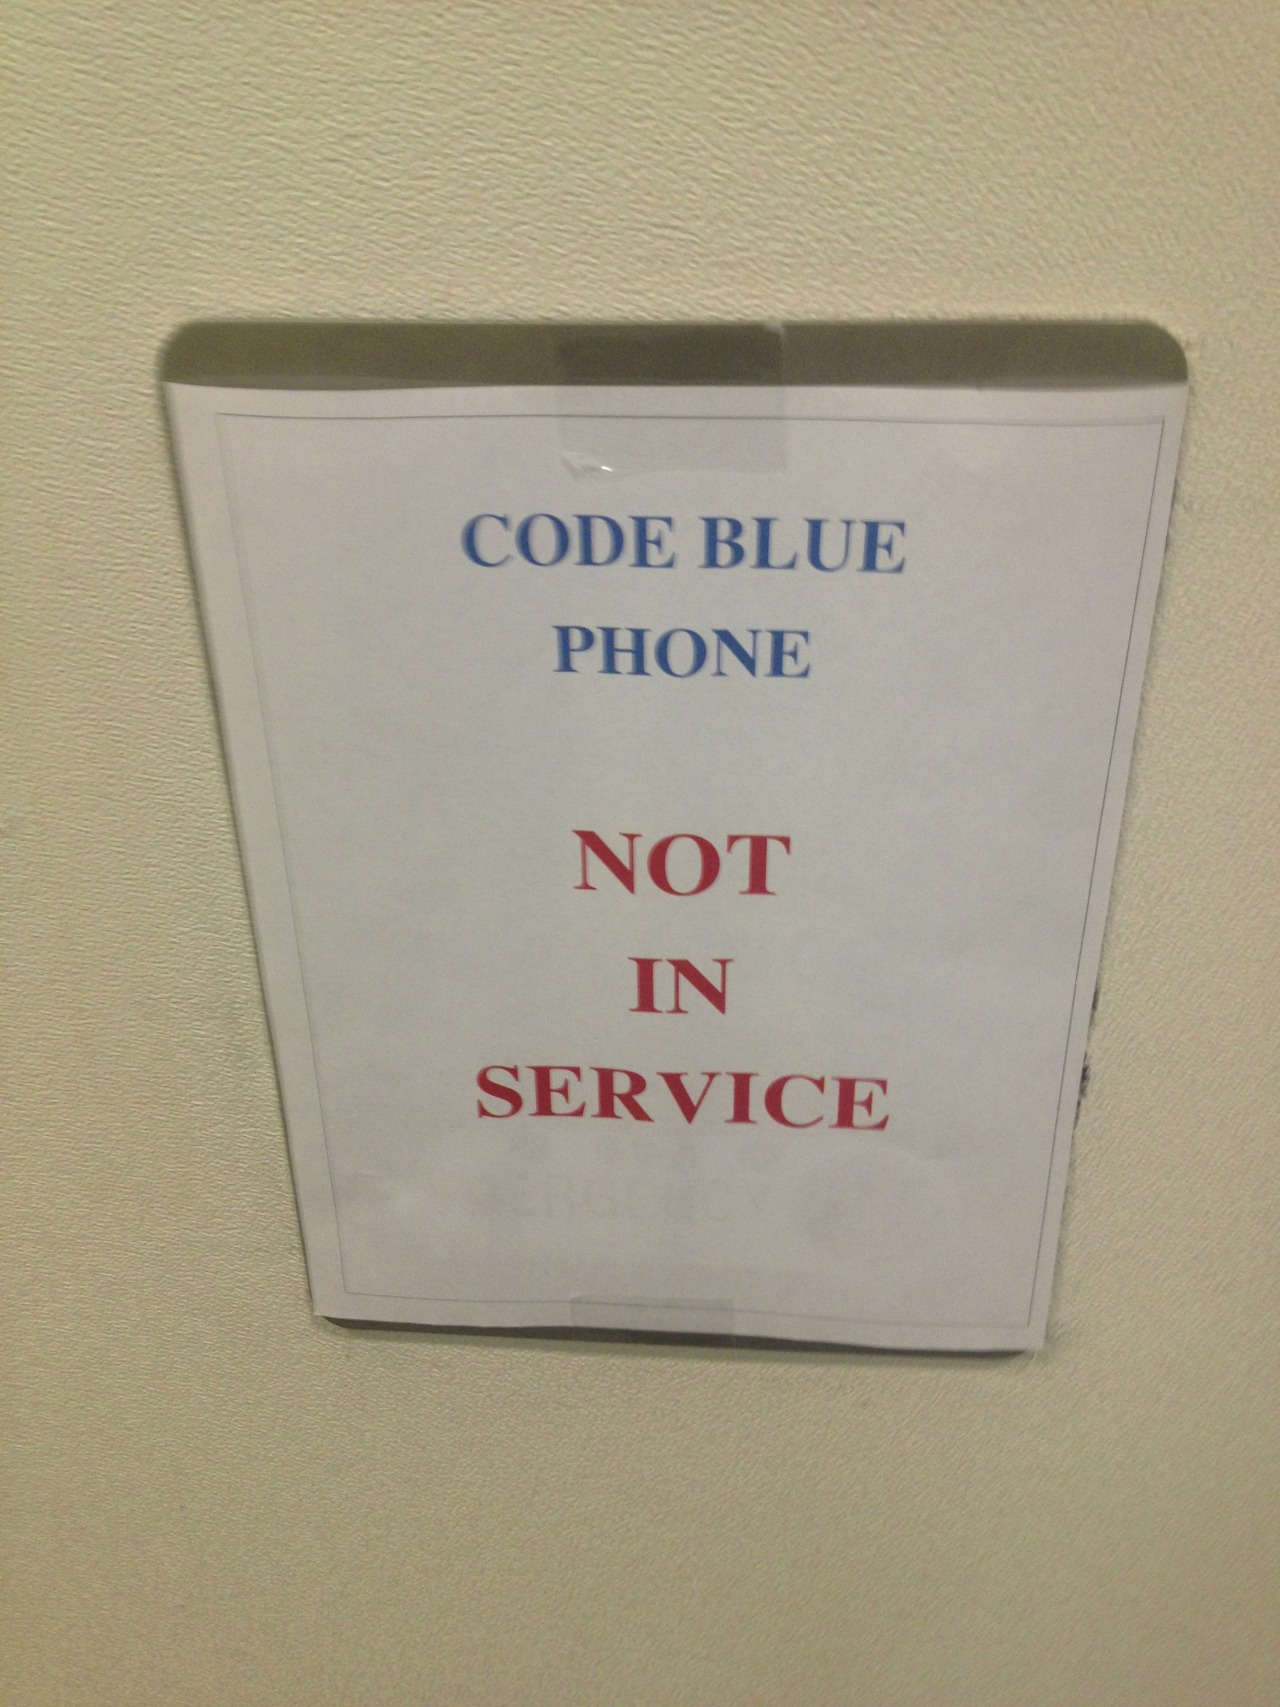 What is code blue, and why did it have a phone?